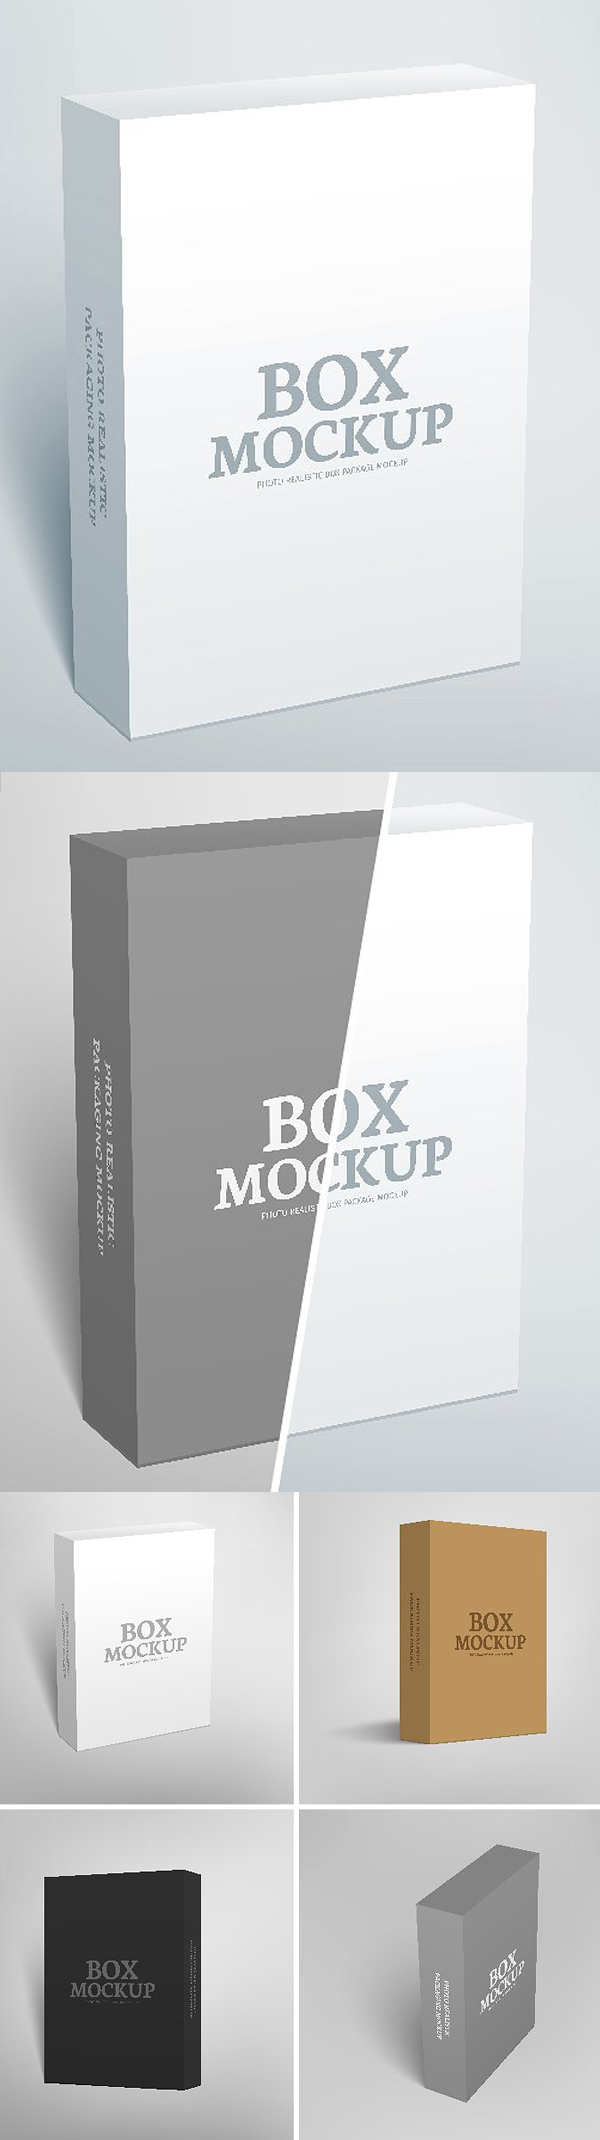 Software Packaging Box Mockup